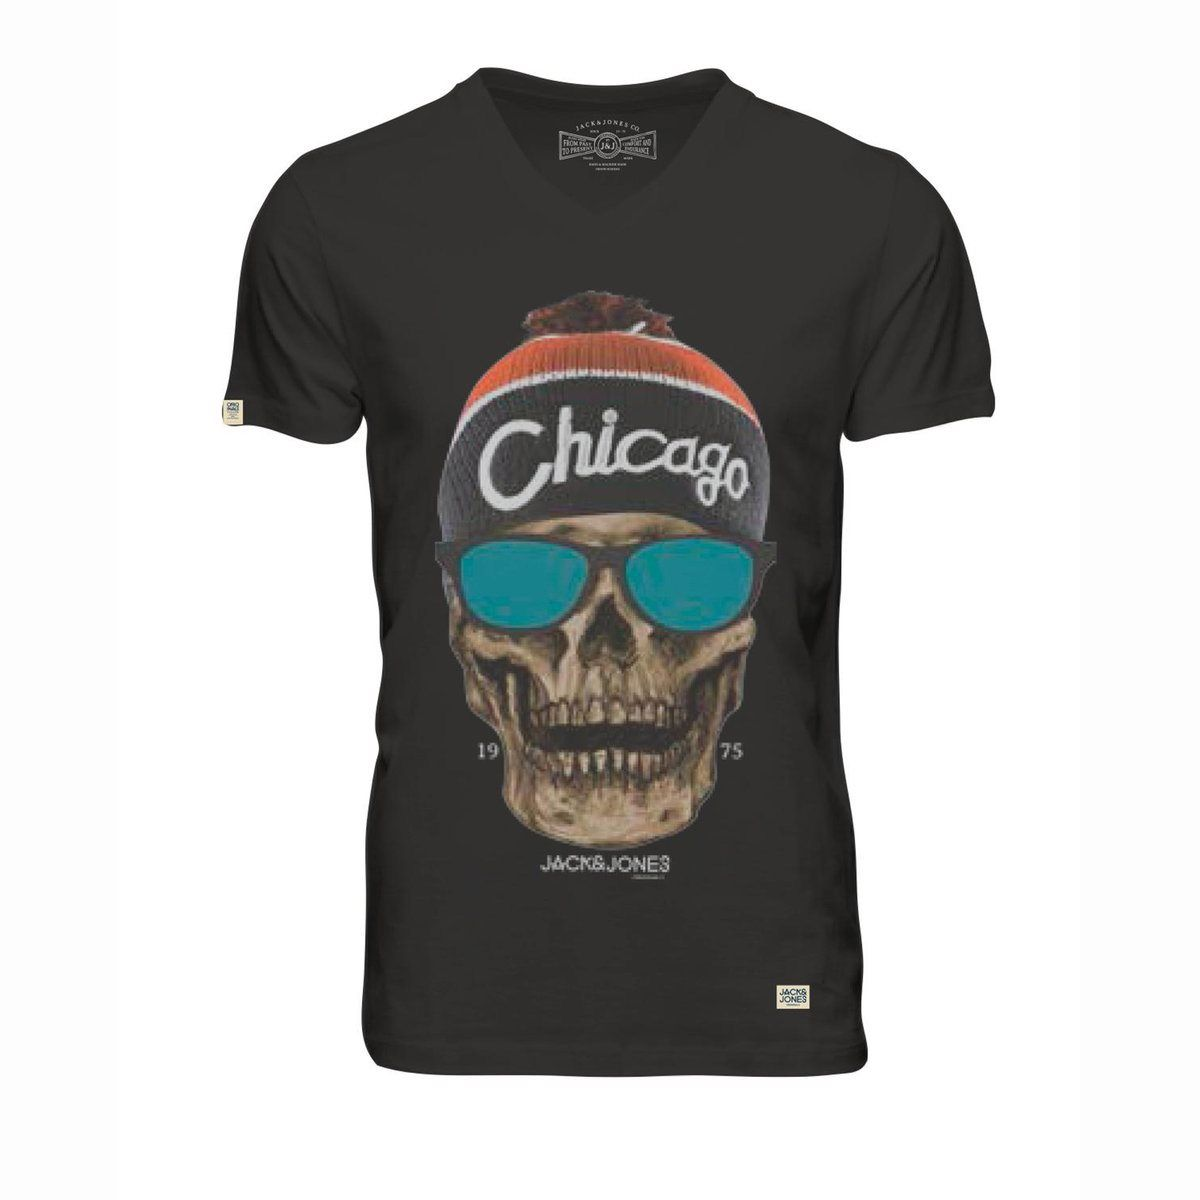 T-shirt skunny estampada, decote em v Jack & Jones | La Redoute